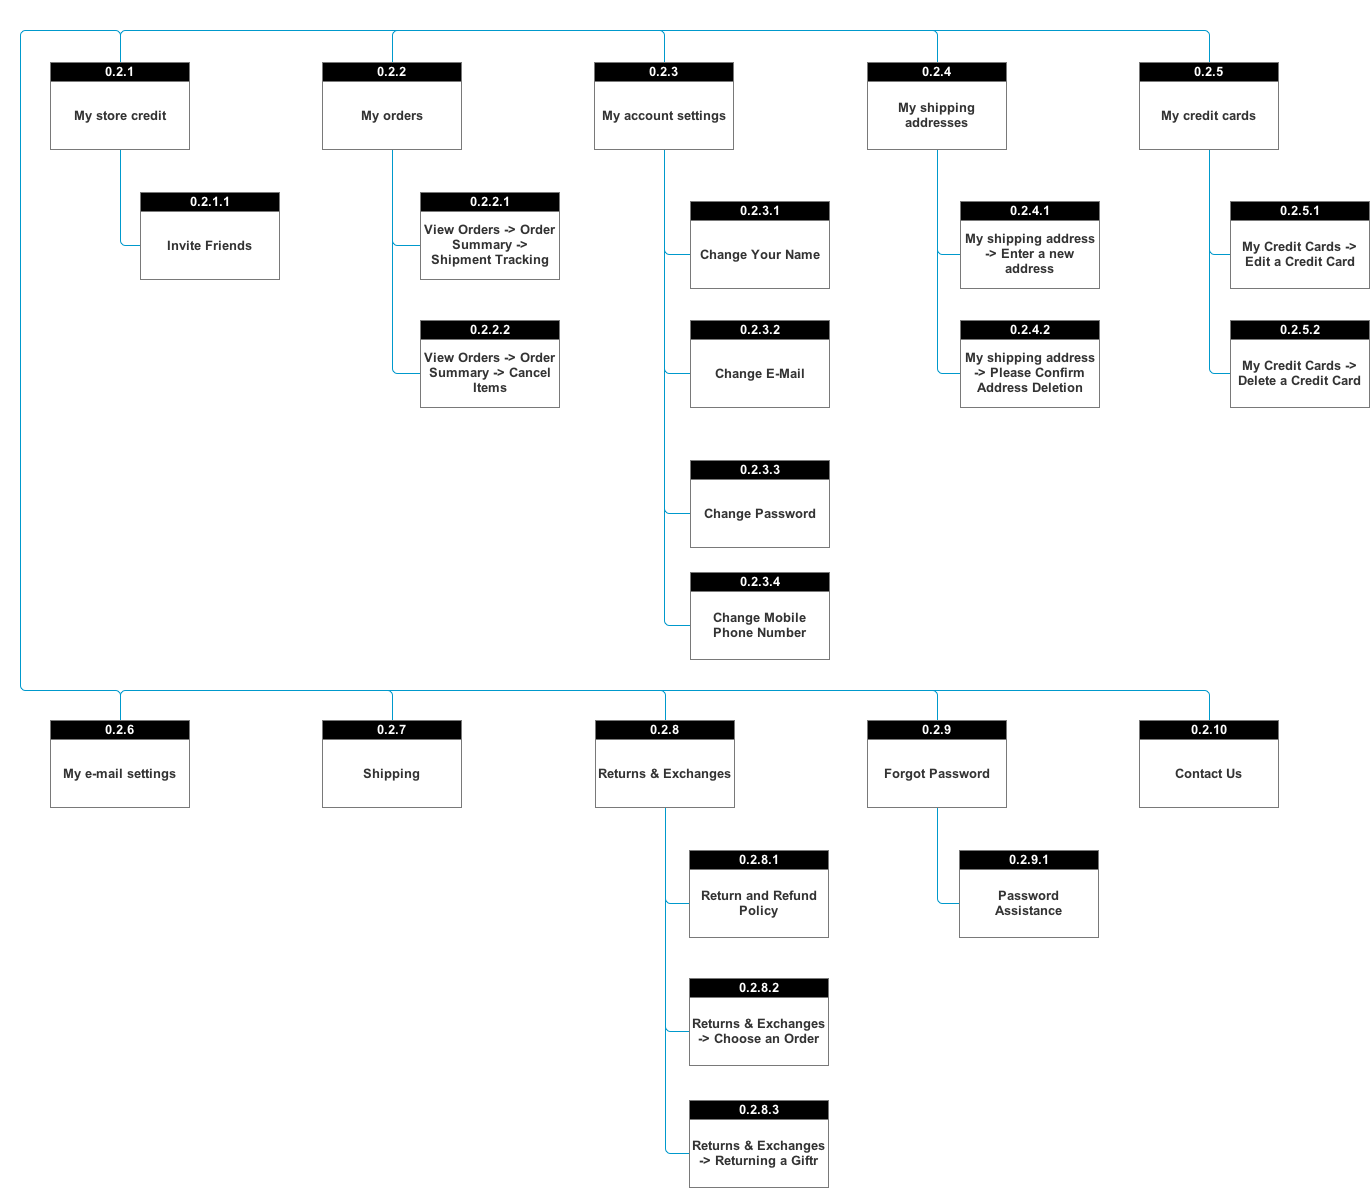 sitemap_0.2_my_account